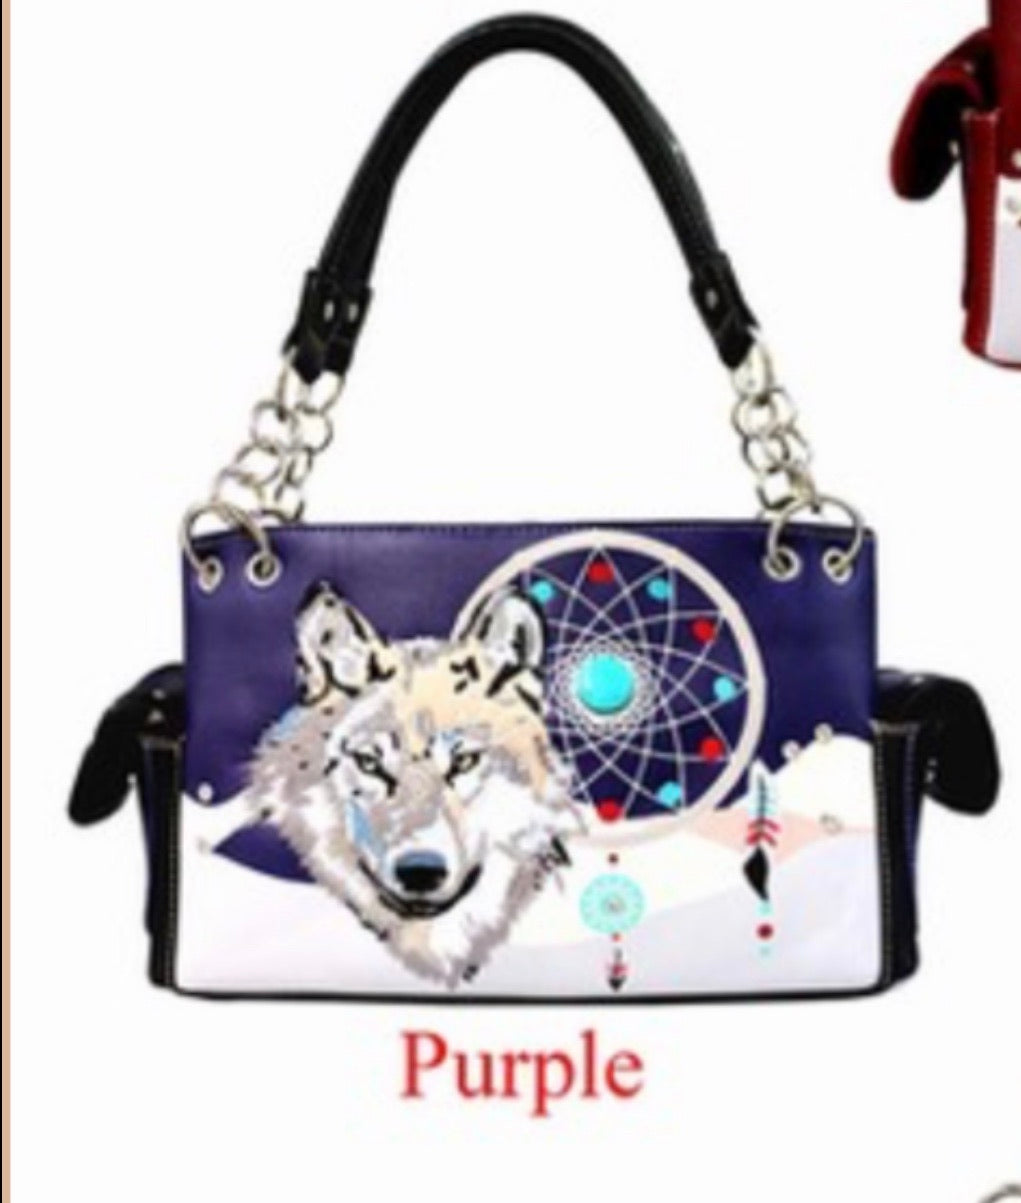 Purple wolf dreamcatcher purse with chain